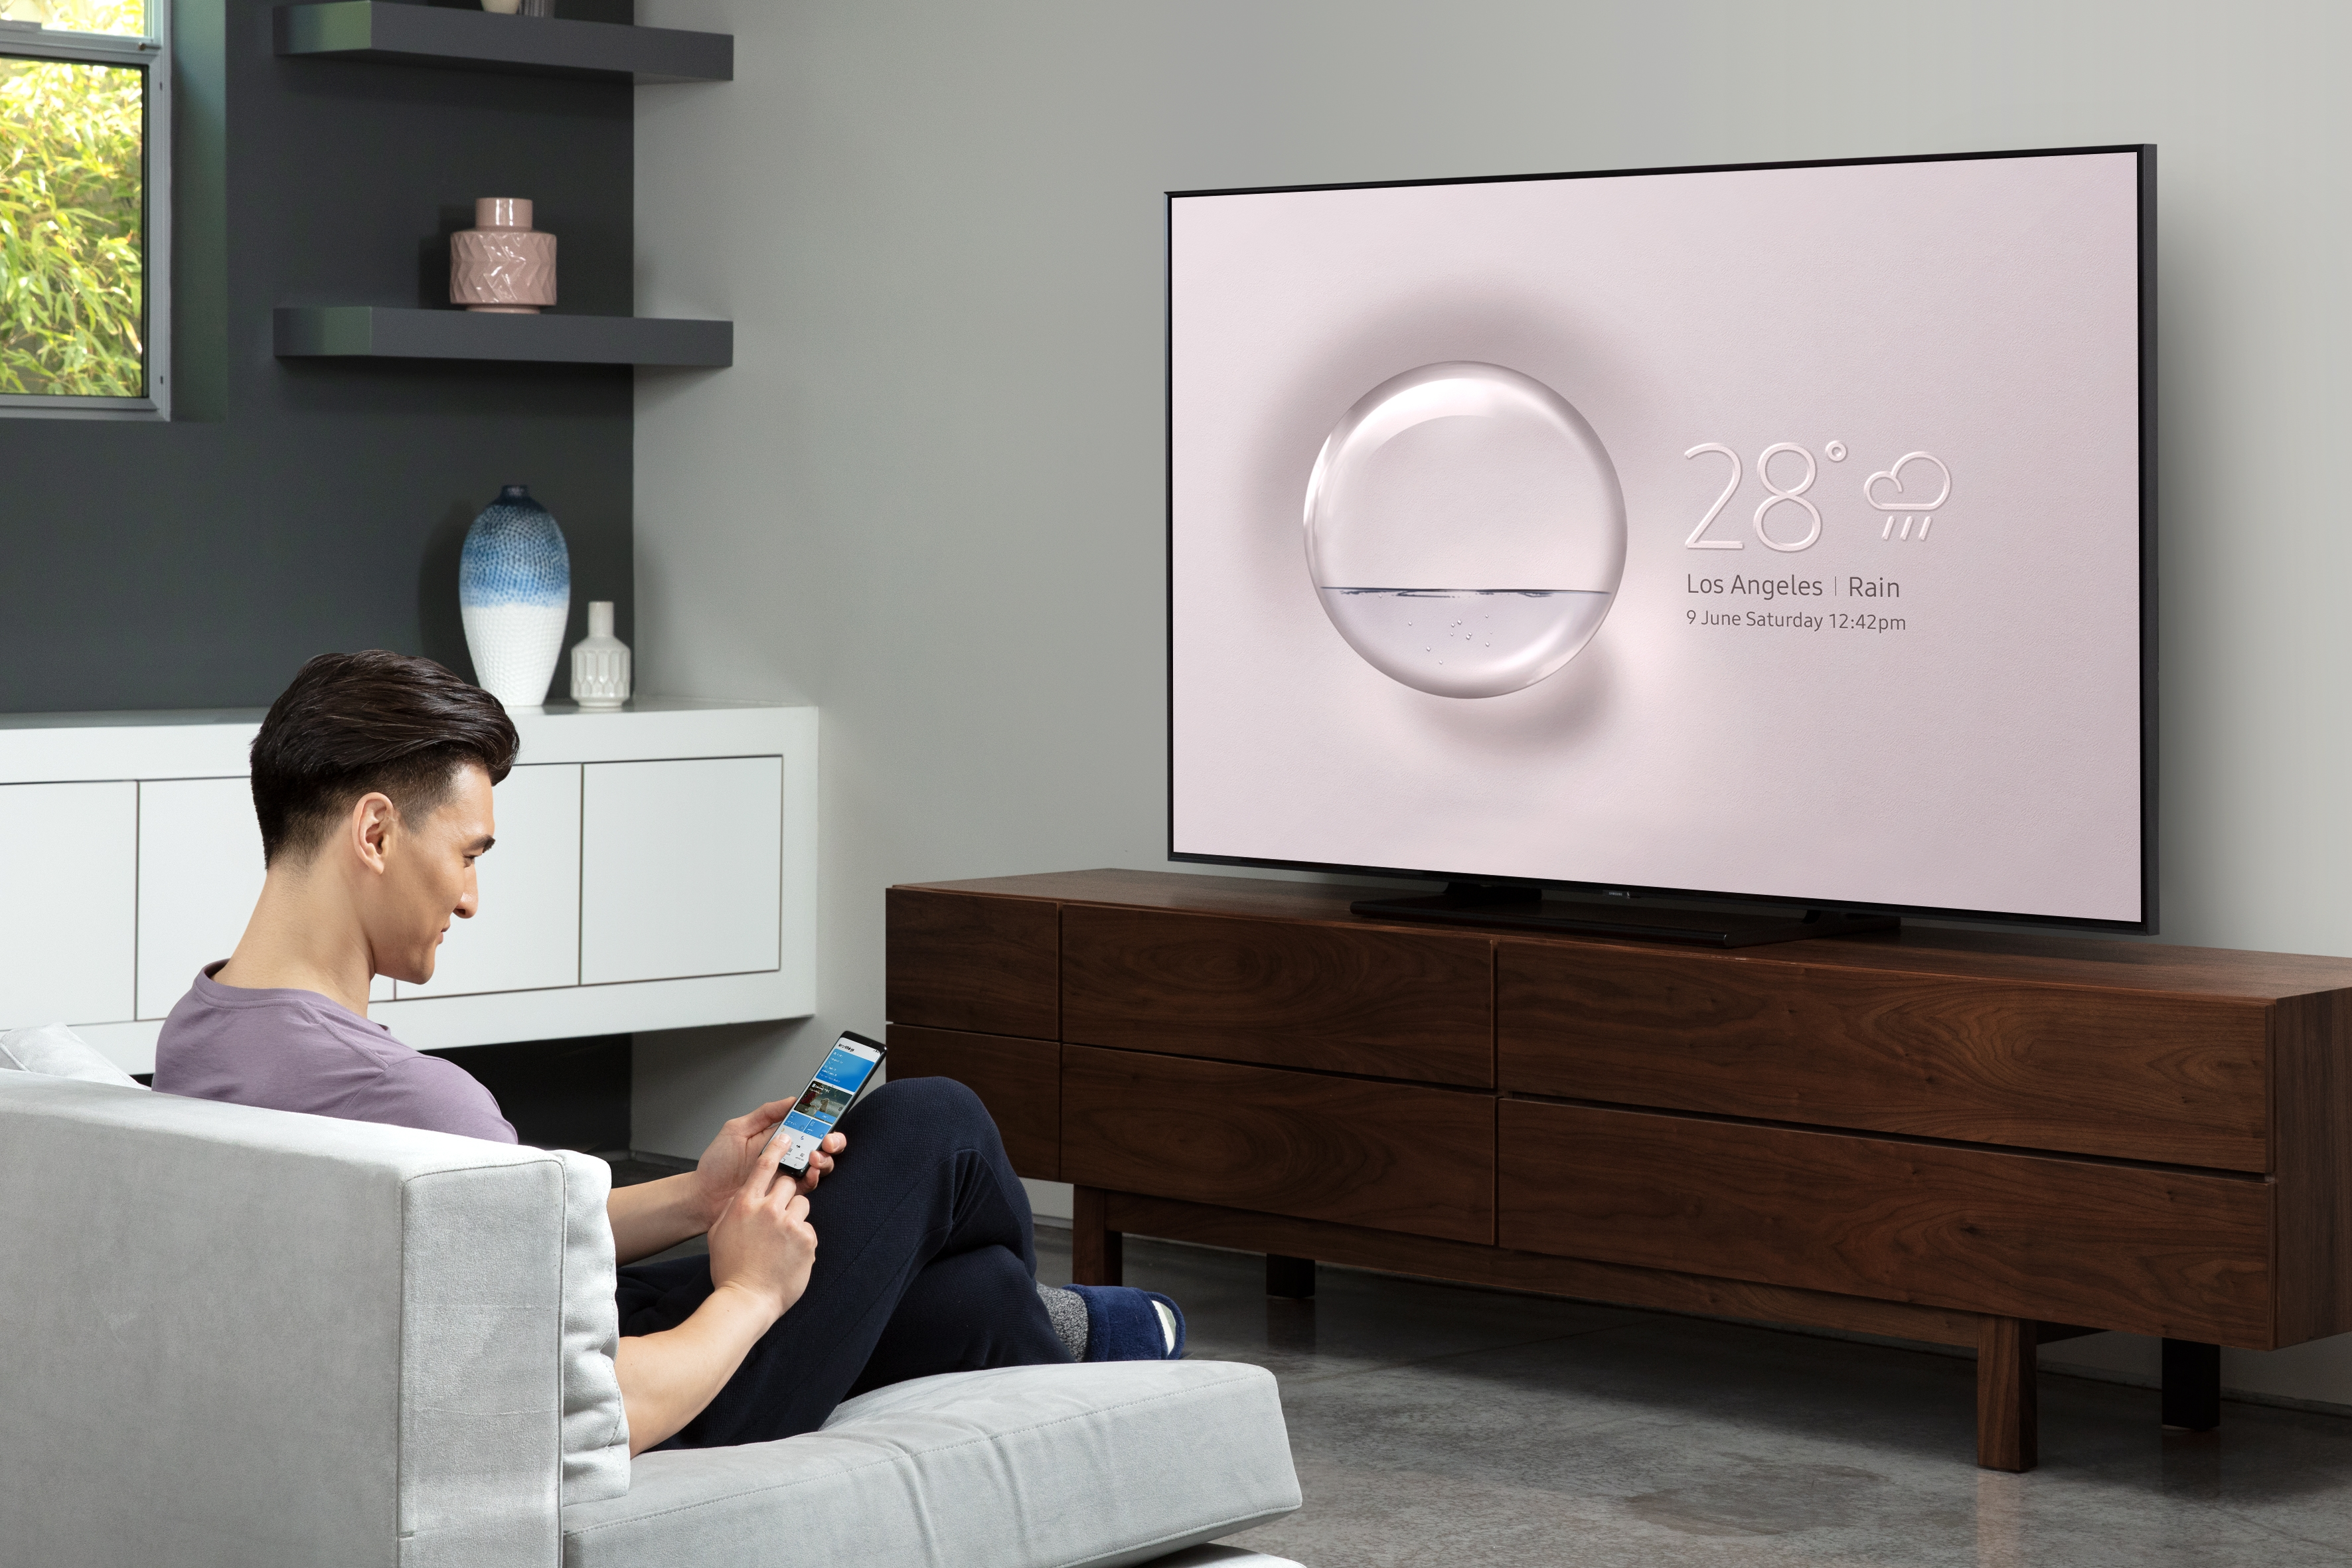 Enjoy watching shows or movies on different devices from anywhere in the house. Connect your smart devices to see mobile content on the big TV in the living room, and keep on watching even on the refrigerator in the kitchen.